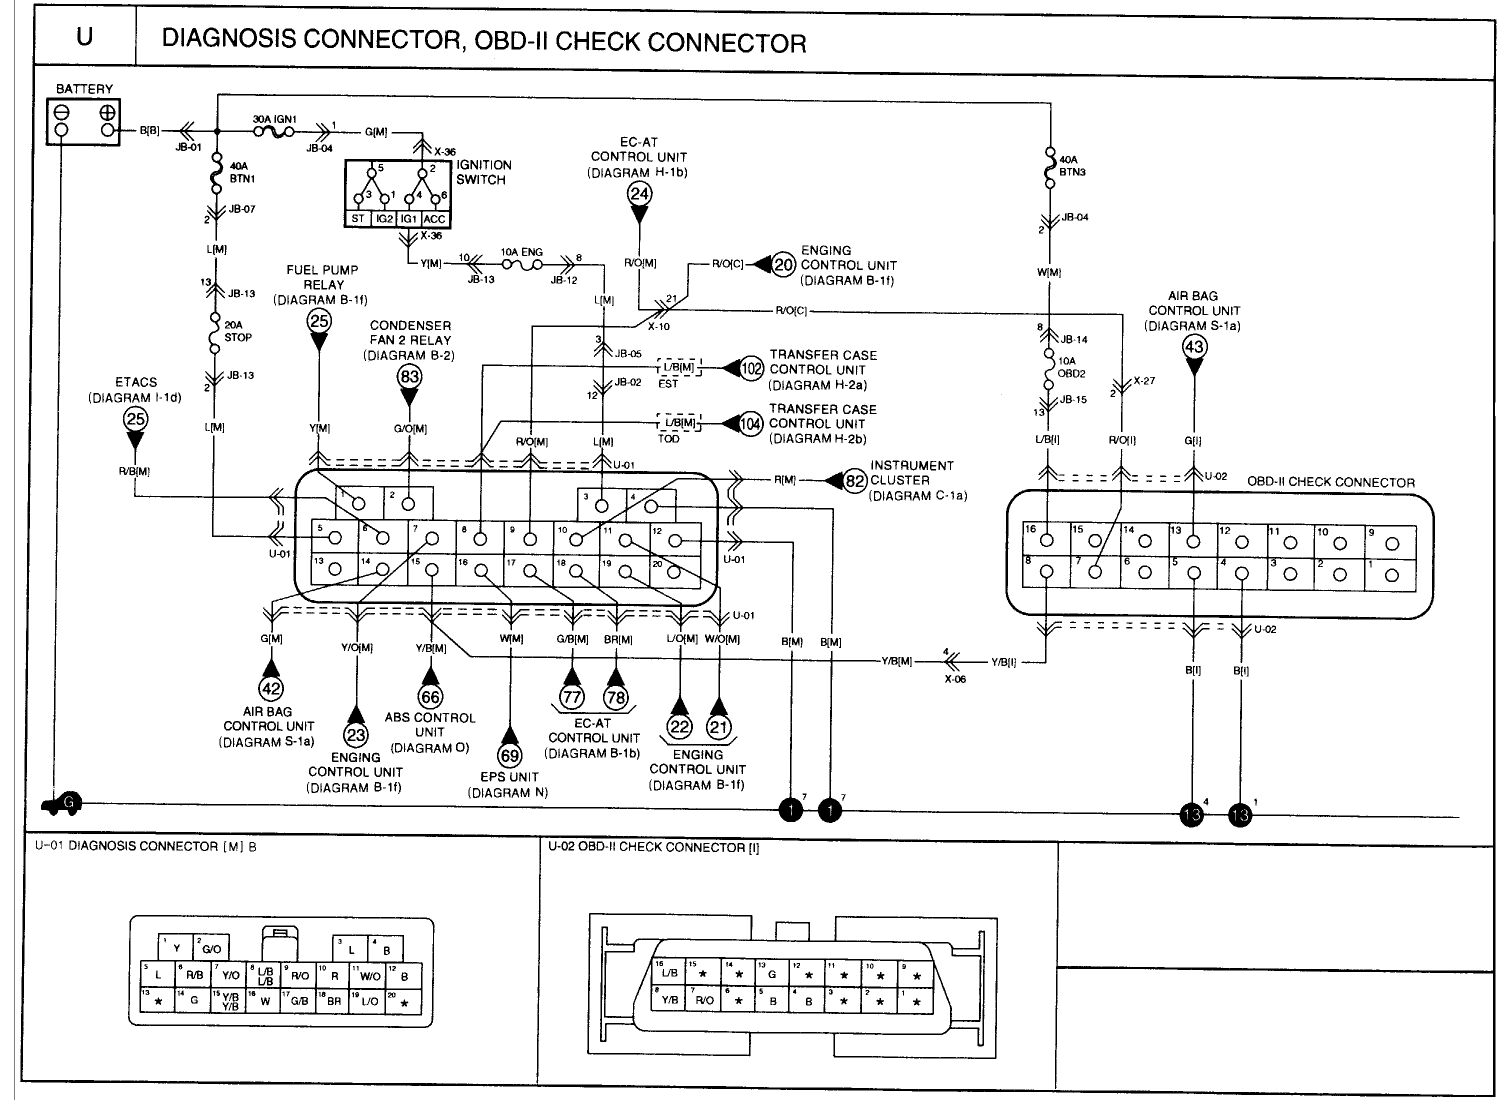 kia k2700 wiring diagram doors will lock with fob, will not open with fob, but will ... kia pride wiring diagram free download